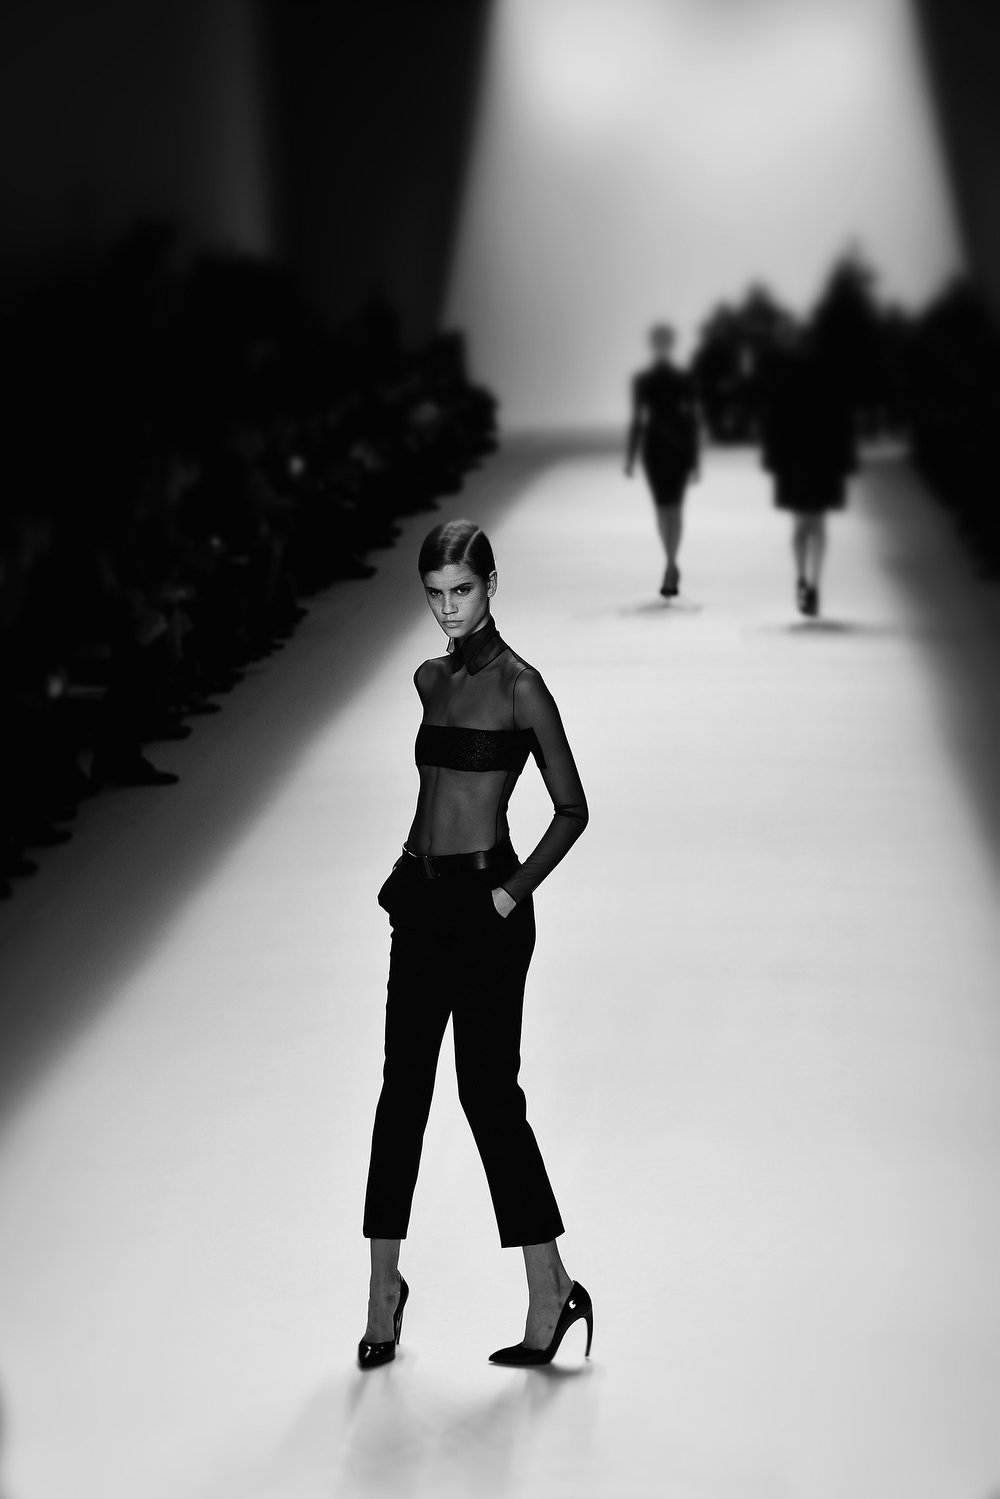 . A model walks the runway during the Akris Fall/Winter 2013 Ready-to-Wear show as part of Paris Fashion Week on March 3, 2013 in Paris, France.  (Photo by Gareth Cattermole/Getty Images)